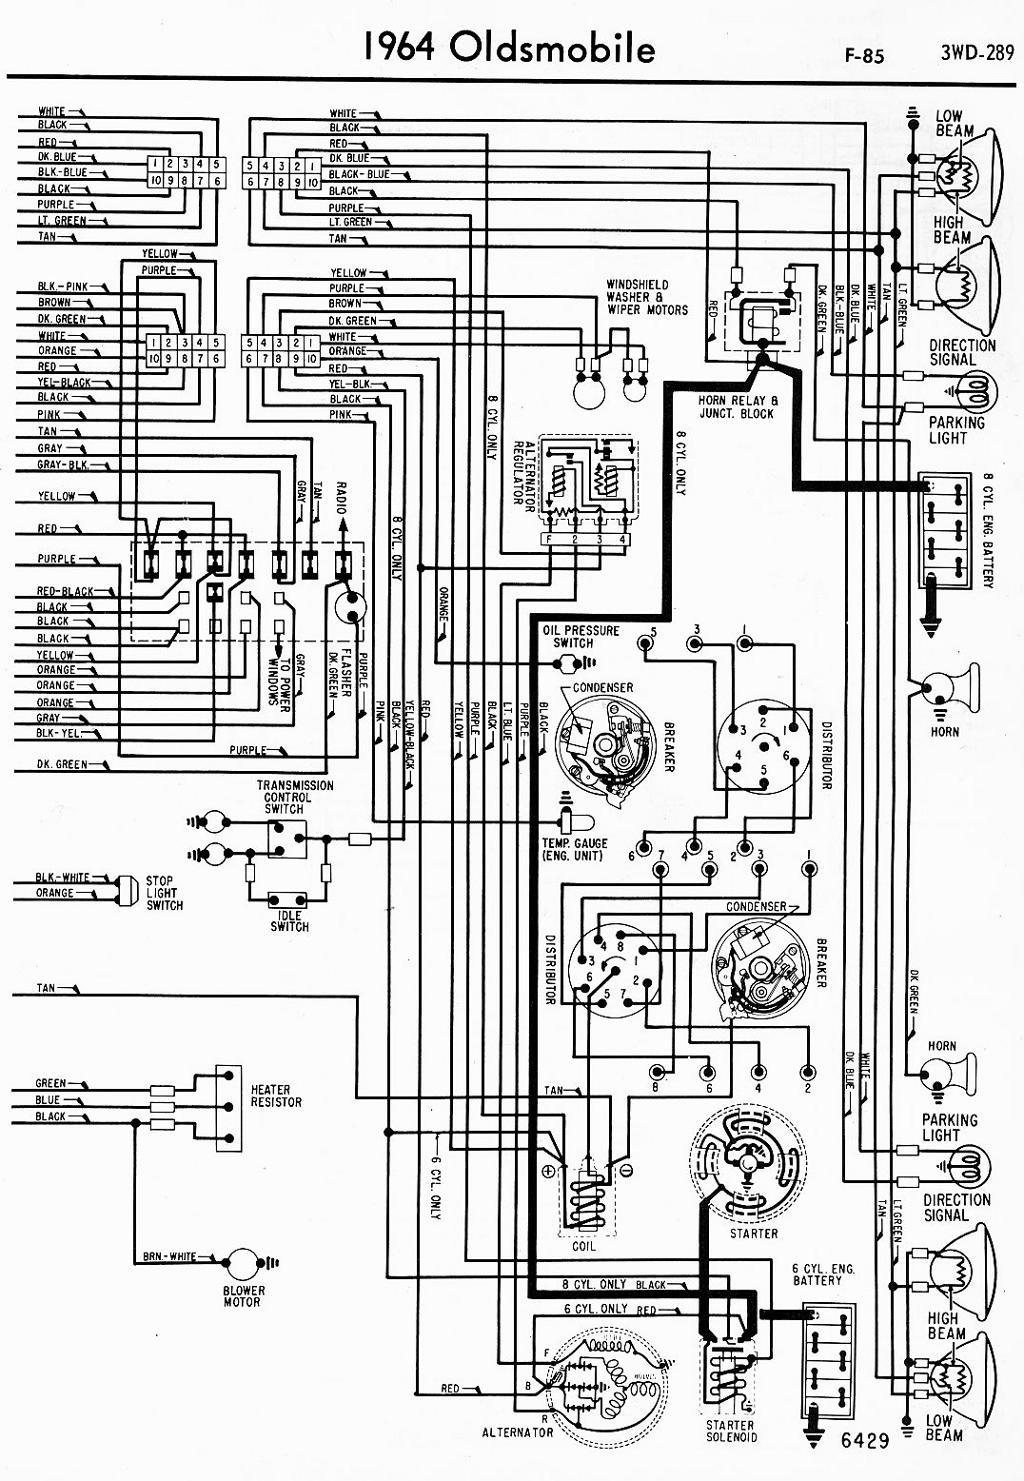 Oldsmobile Intrigue Stereo Wiring Diagram Manual Guide 2003 Alero Free Picture Car Detailed Schematics 1998 Radio